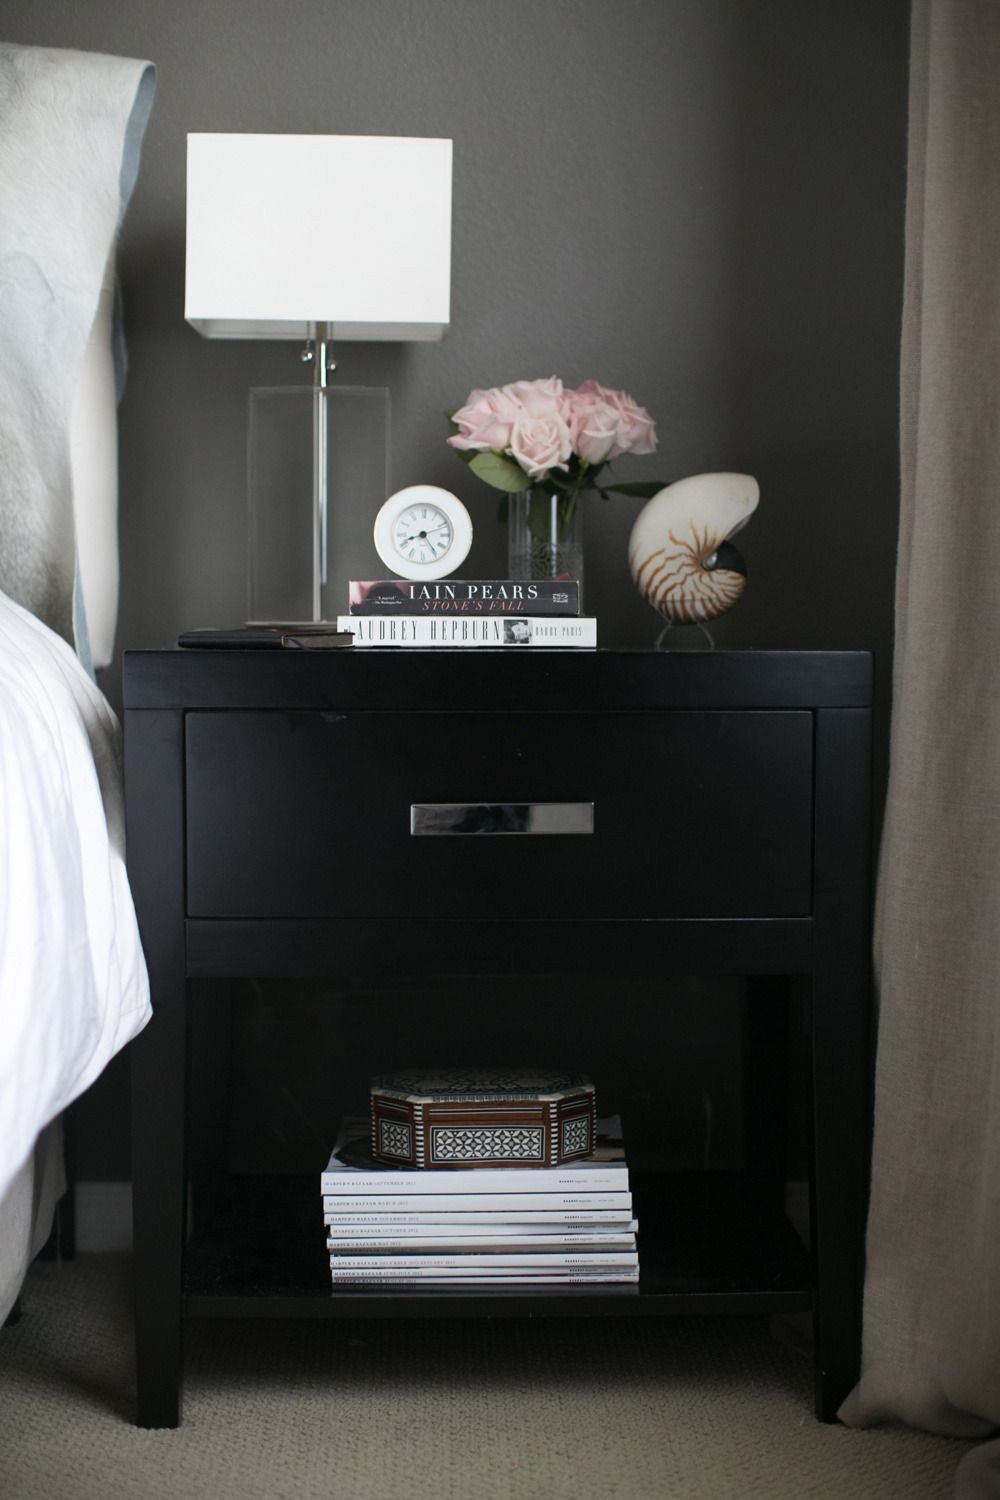 End Tables for Bedroom Awesome Chic & Edgy Home Of Small Shop